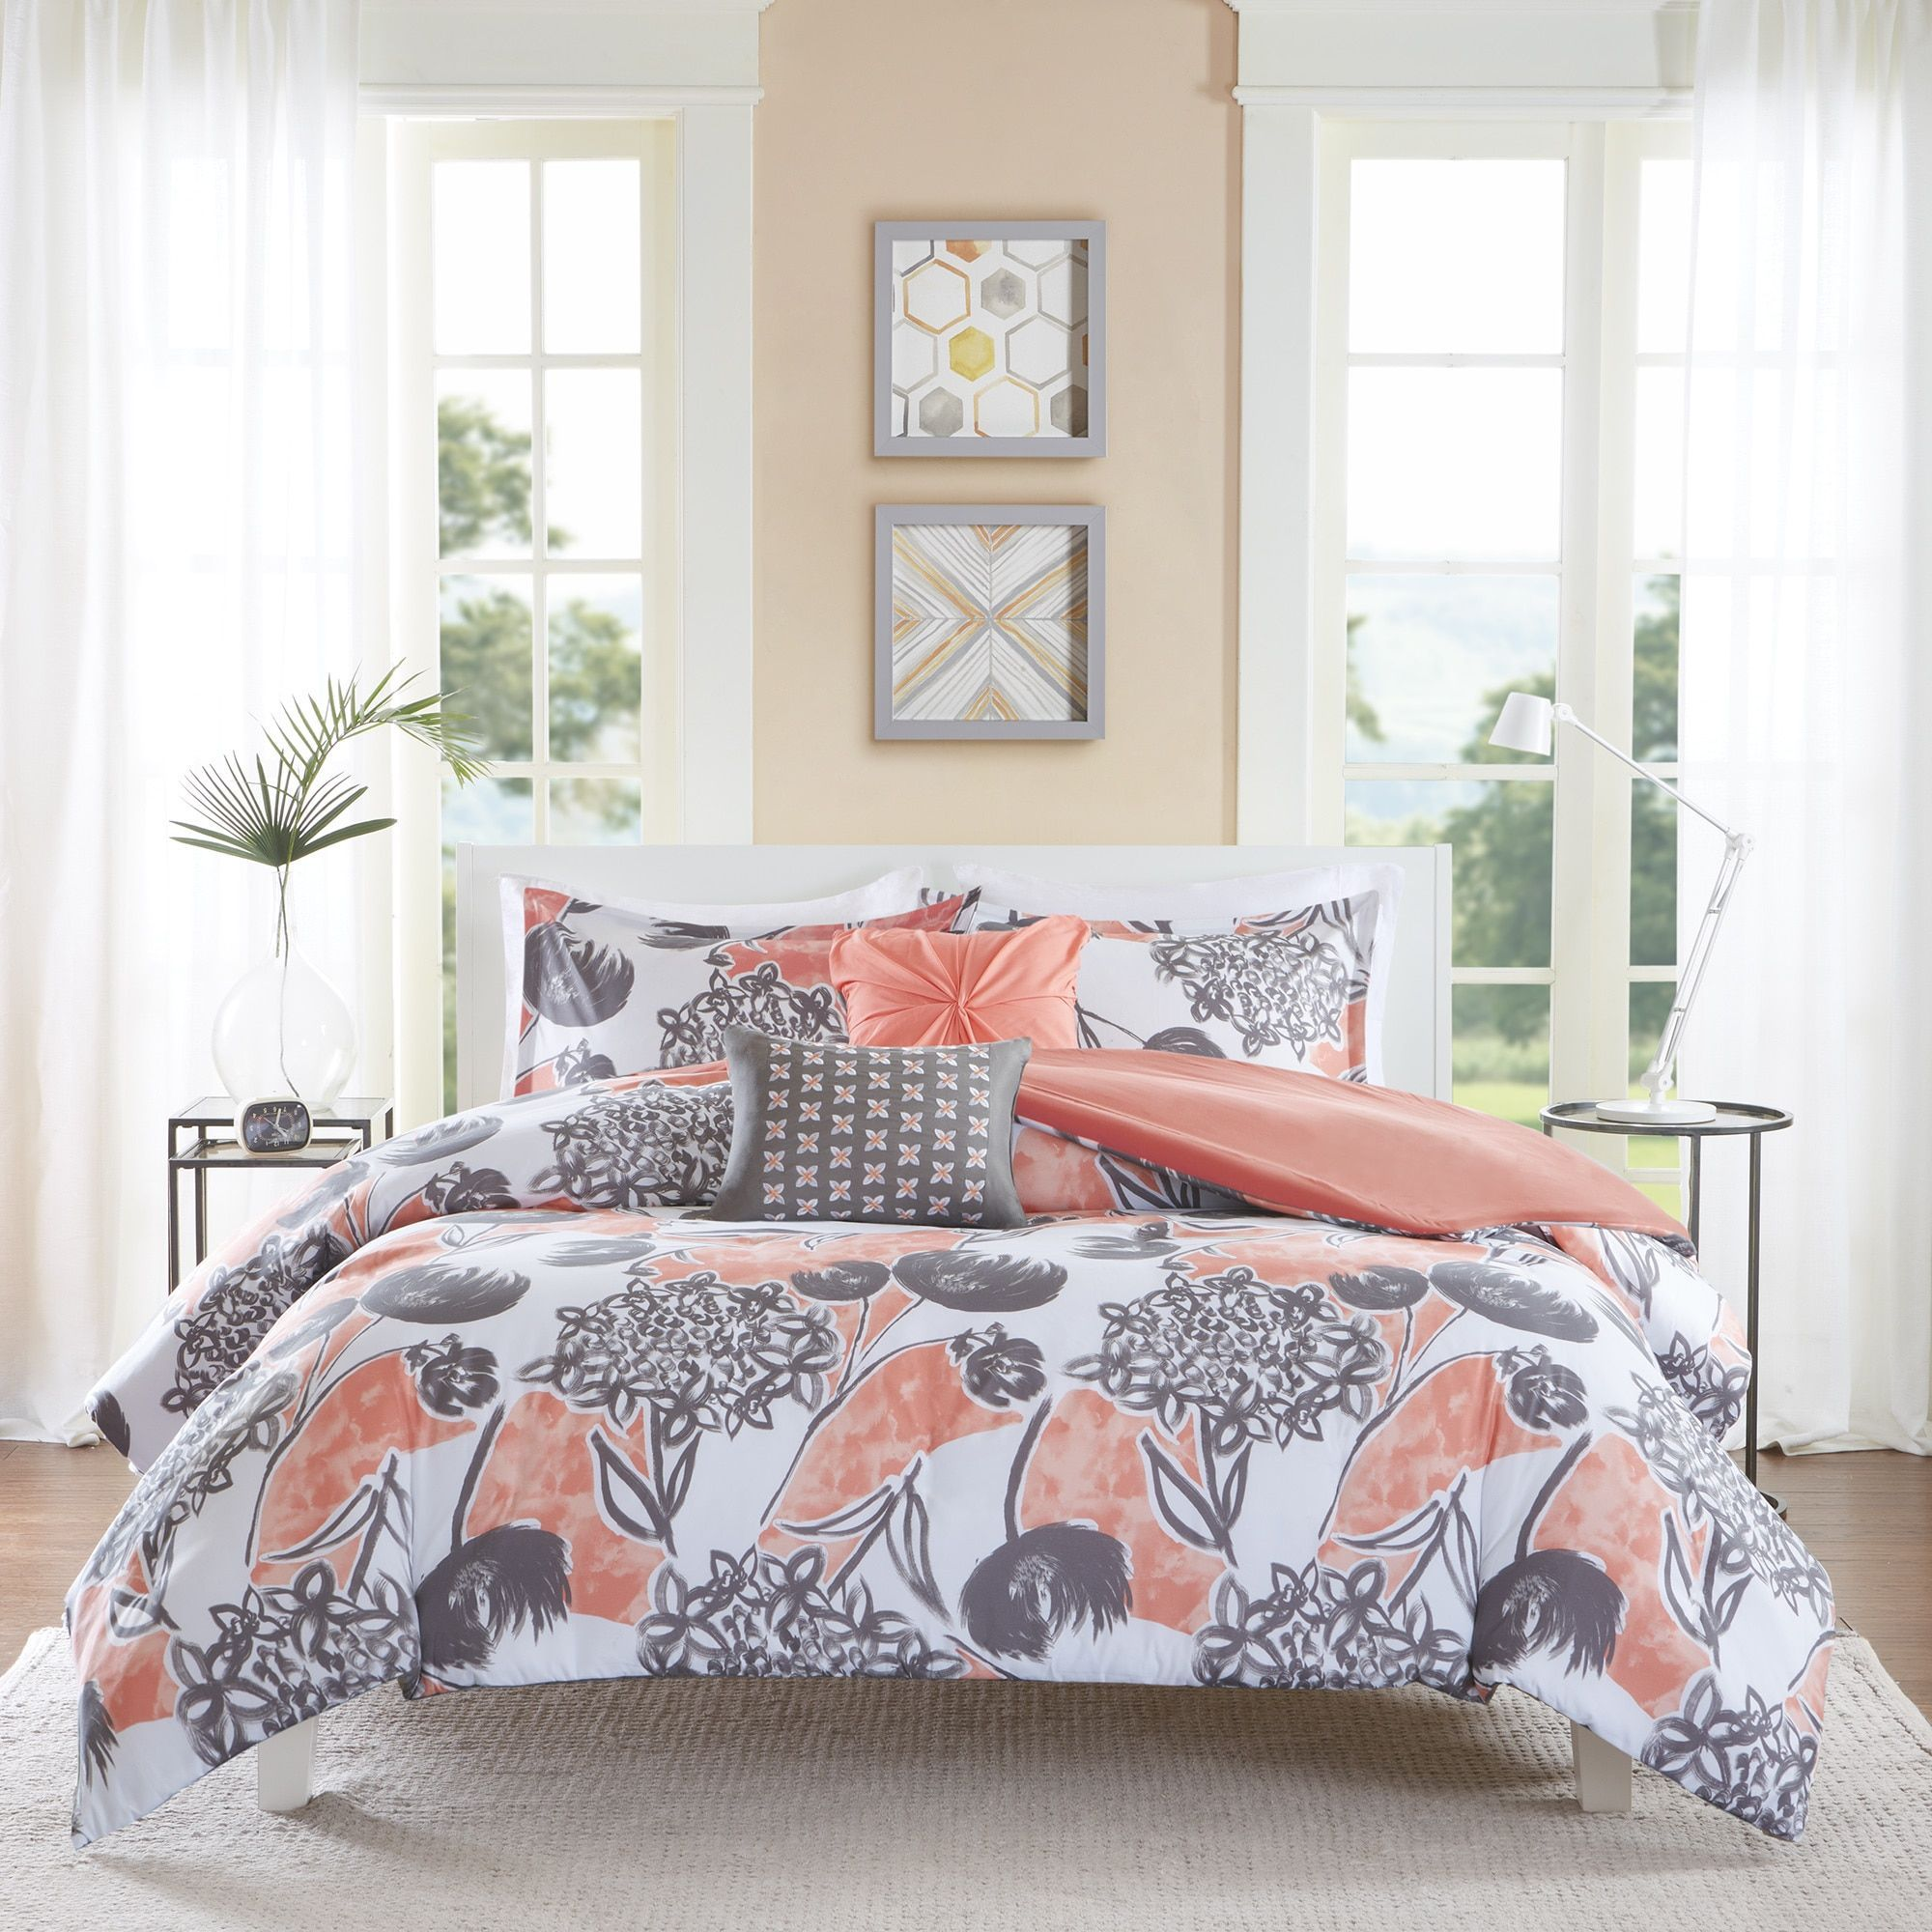 white linen pink sets comforters twin duvet and grey teal size light striped black bed quilt l ruffle stripe bedding comforter cover full setf king gray set